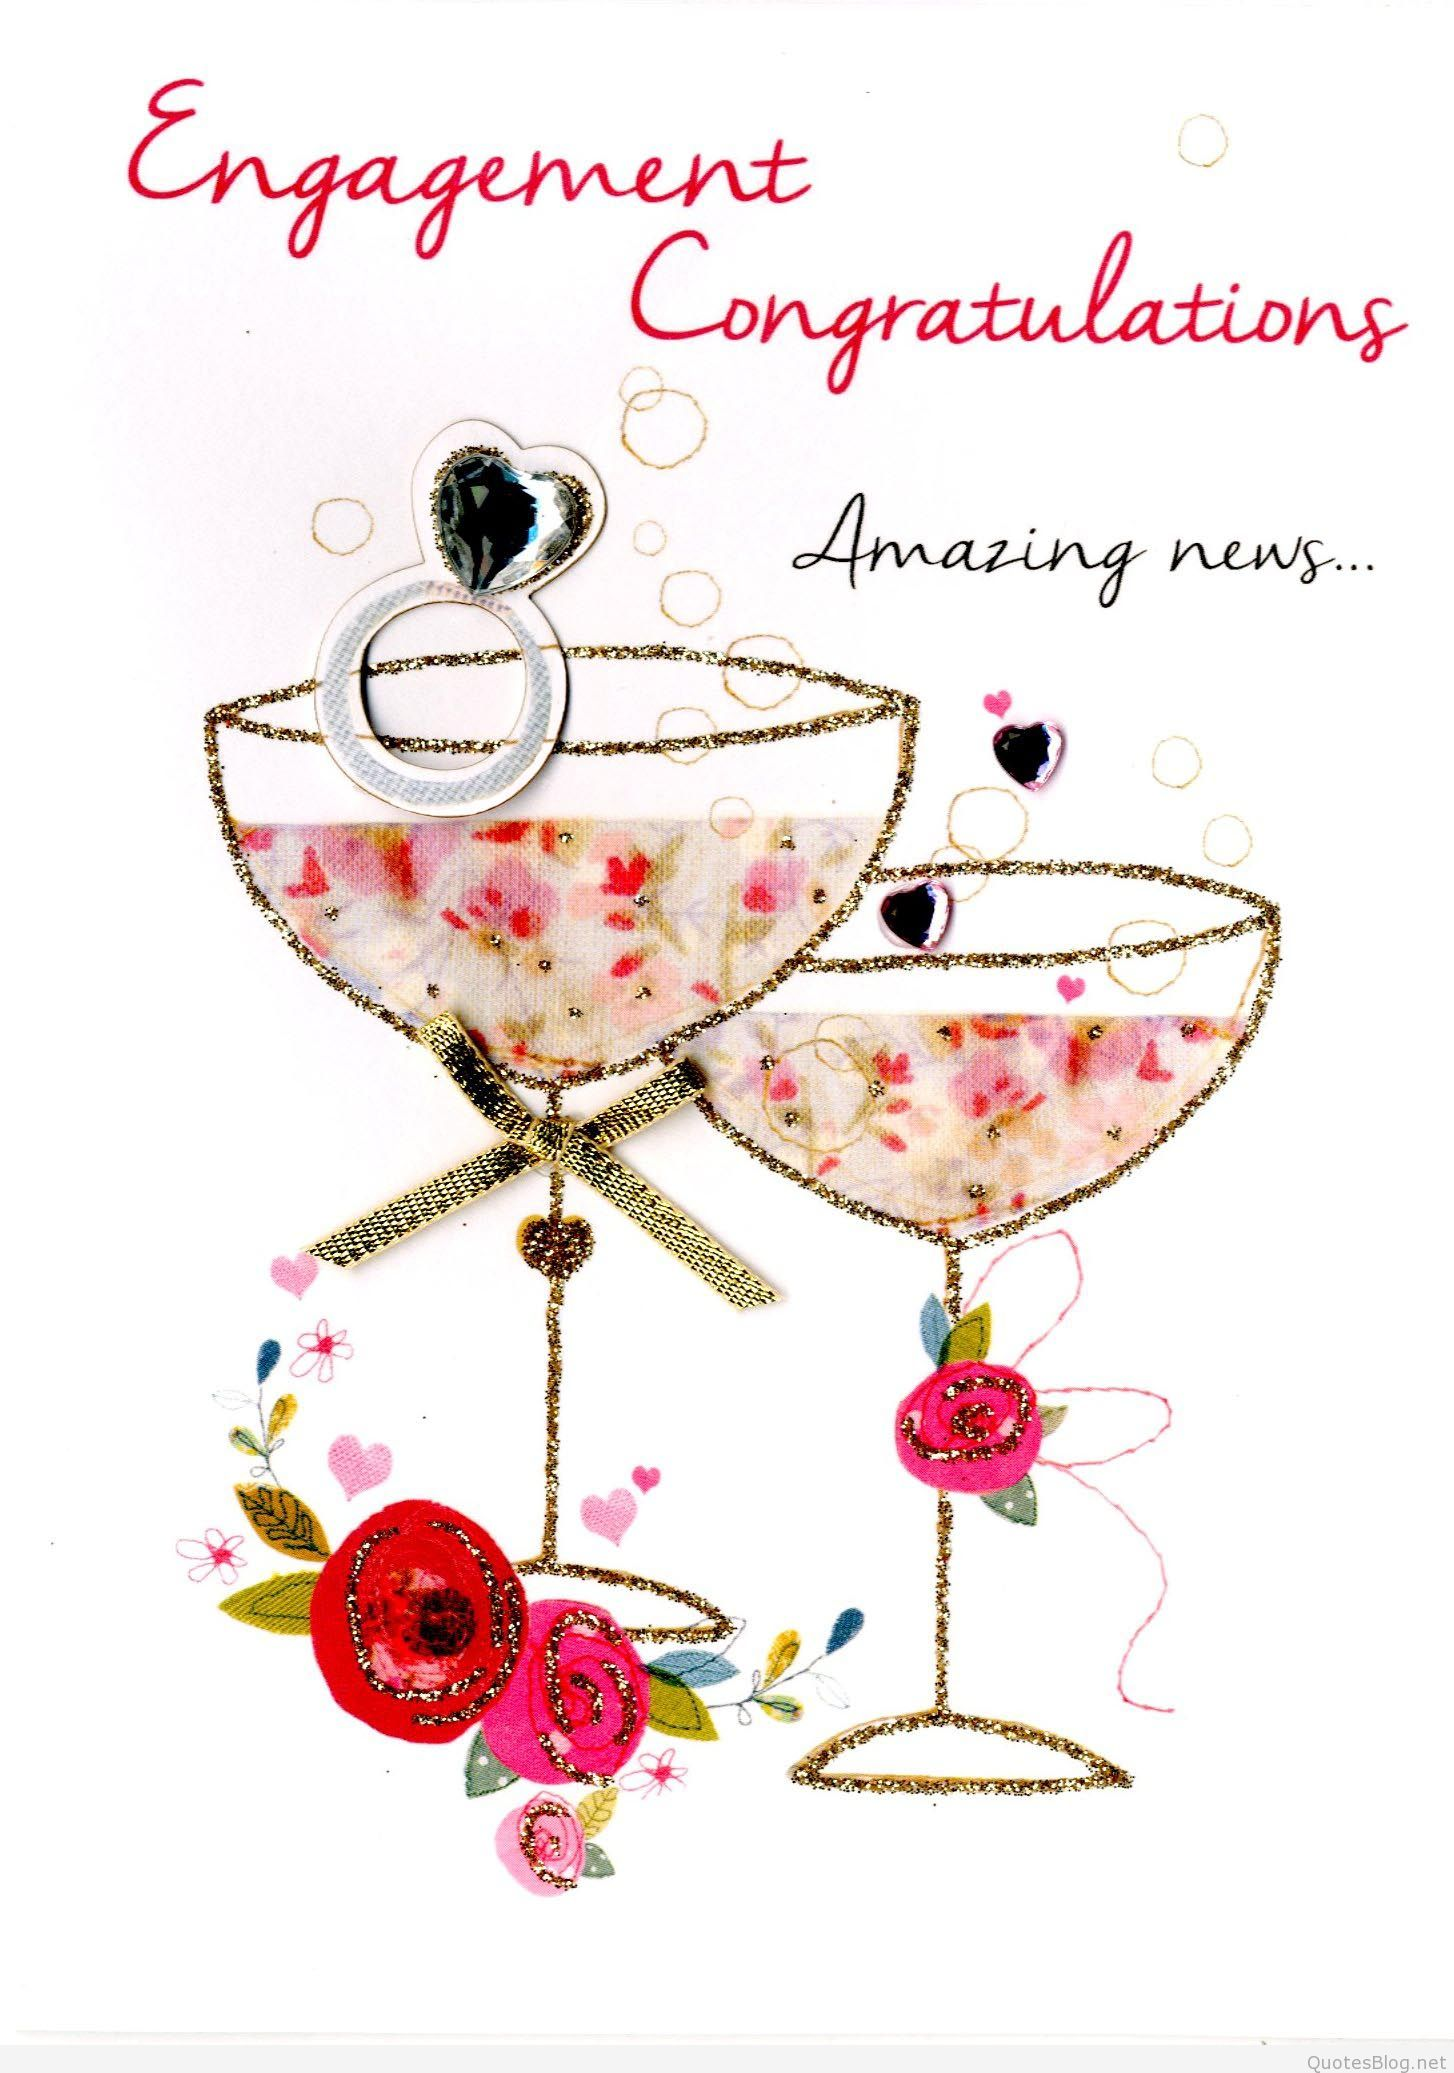 Congratulations images gifs and. Engagement clipart engagement card